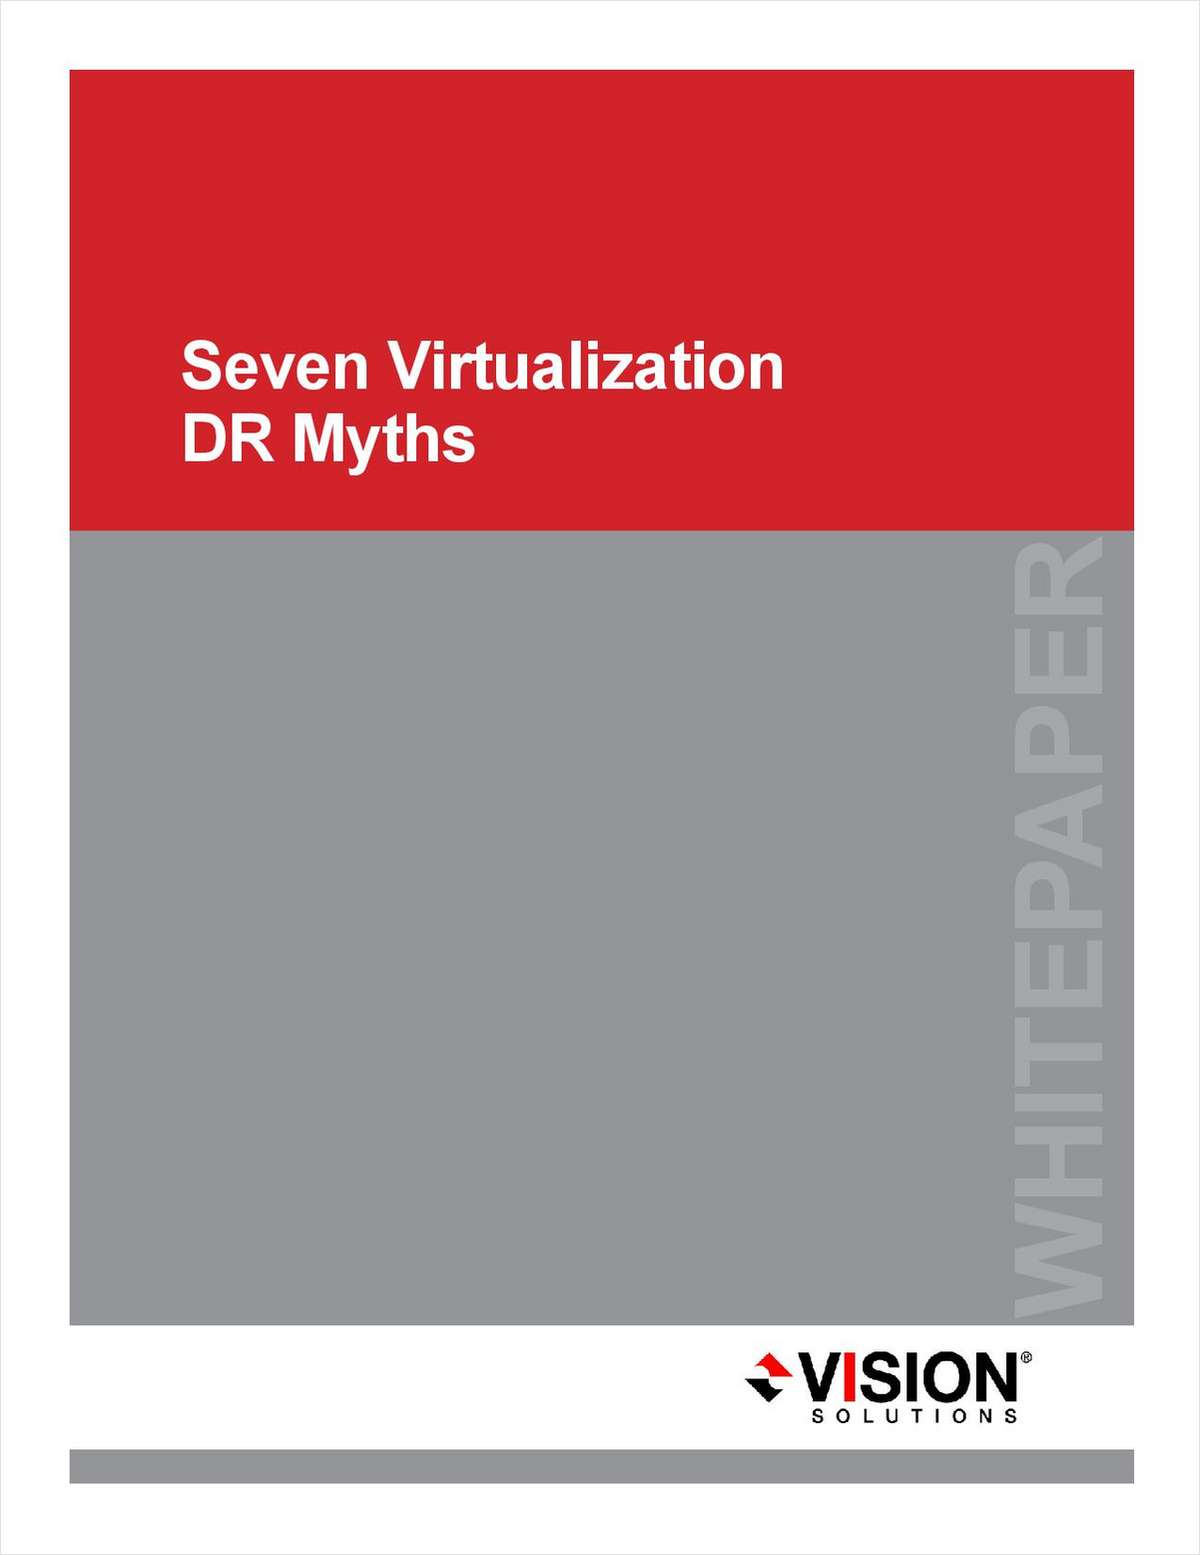 Seven Virtualization DR Myths